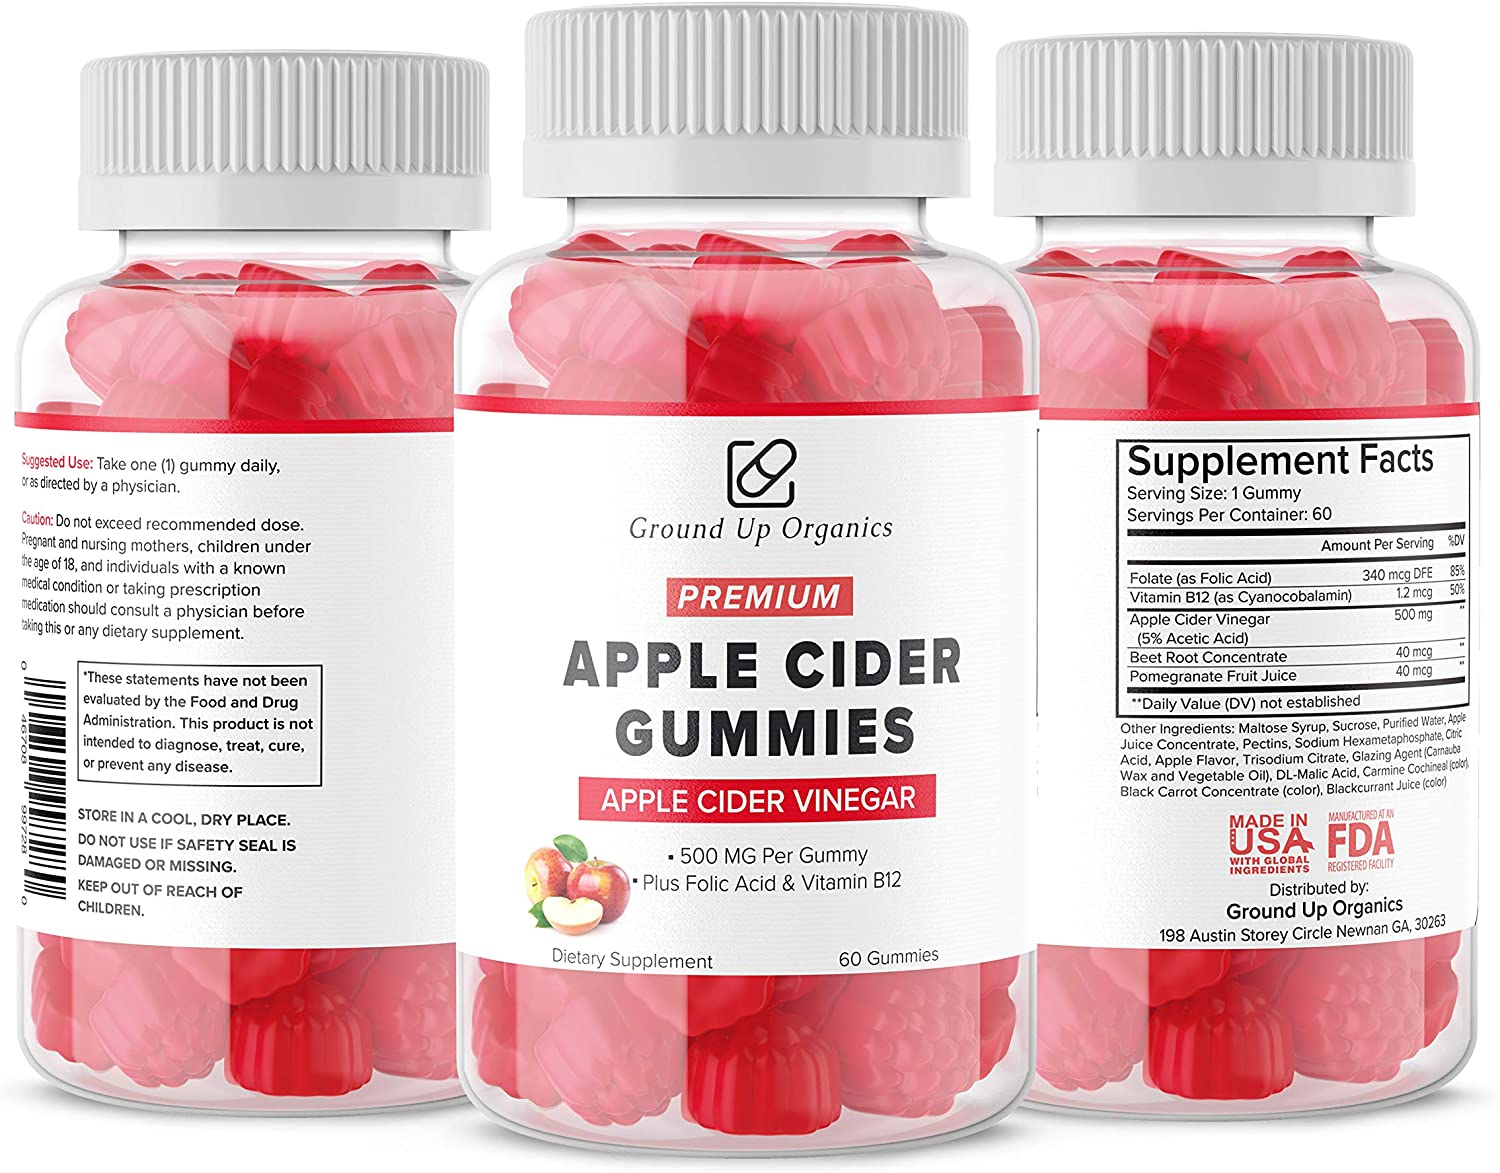 Ground Up Organics Apple Cider Vinegar Gummies - 500mg Per Gummy Plus Folic Acid and Vitamin B12 - Gummy Alternative to Apple Cider Vinegar Capsules - Most Advanced Formula - Immunity, Weight & Detox